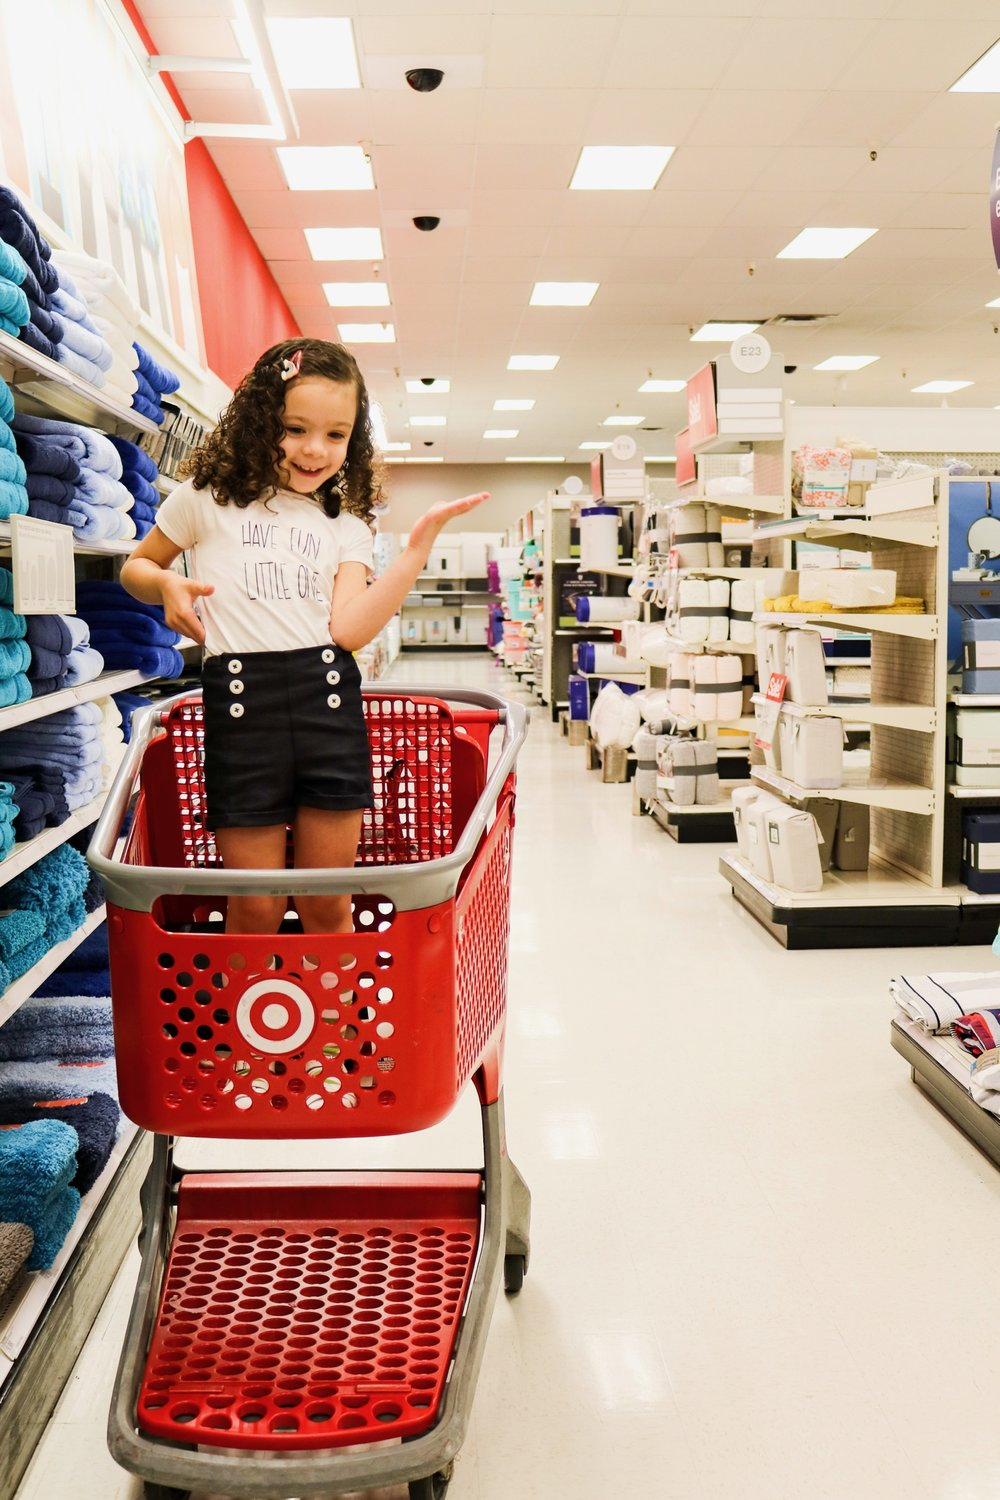 She's a little teapot, short and stout, there is her handle, there is her spout! Of course we had to have a photoshoot at Target because it's where we all love to have fun!